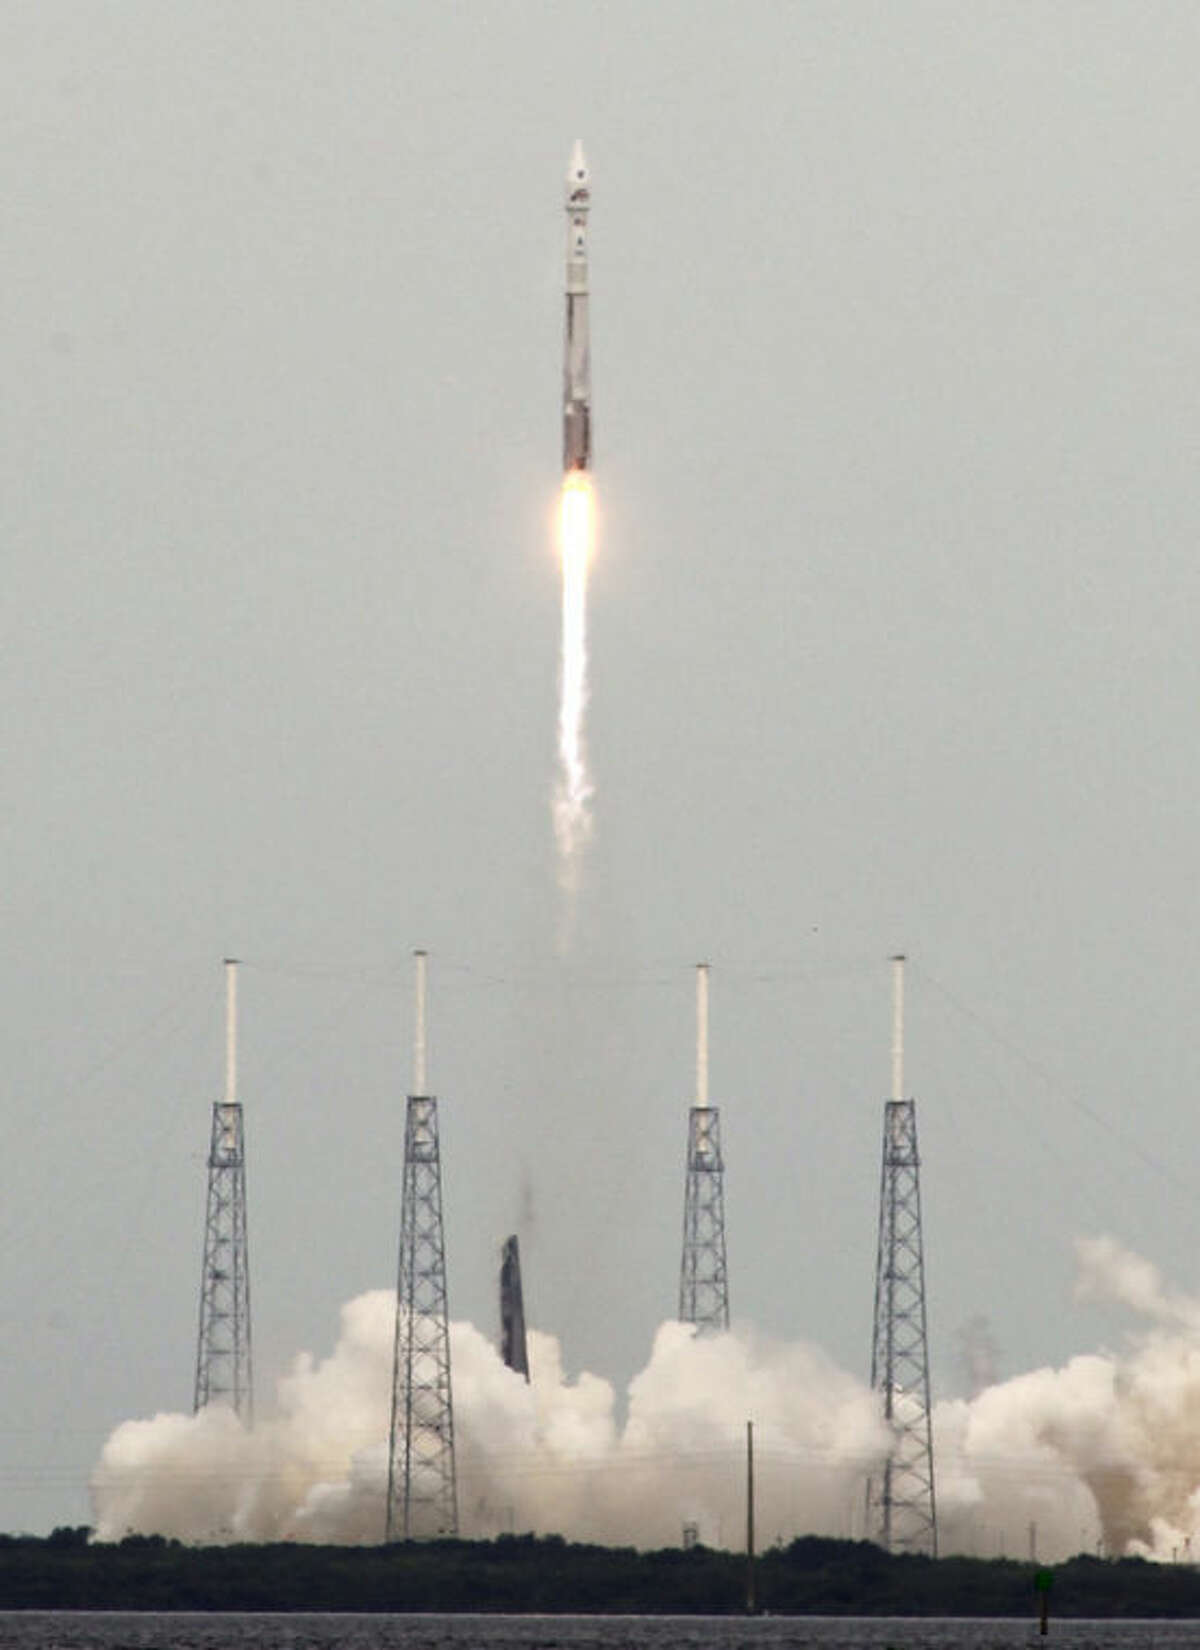 NASA's newest robotic explorer, Maven, atop a United Launch Alliance Atlas 5 rocket, lifts off from Cape Canaveral Air Force Station, Monday, Nov. 18, 2013, in Cape Canaveral, Fla. The spacecraft will orbit Mars and study the planet's upper atmosphere.(AP Photo/Terry Renna)